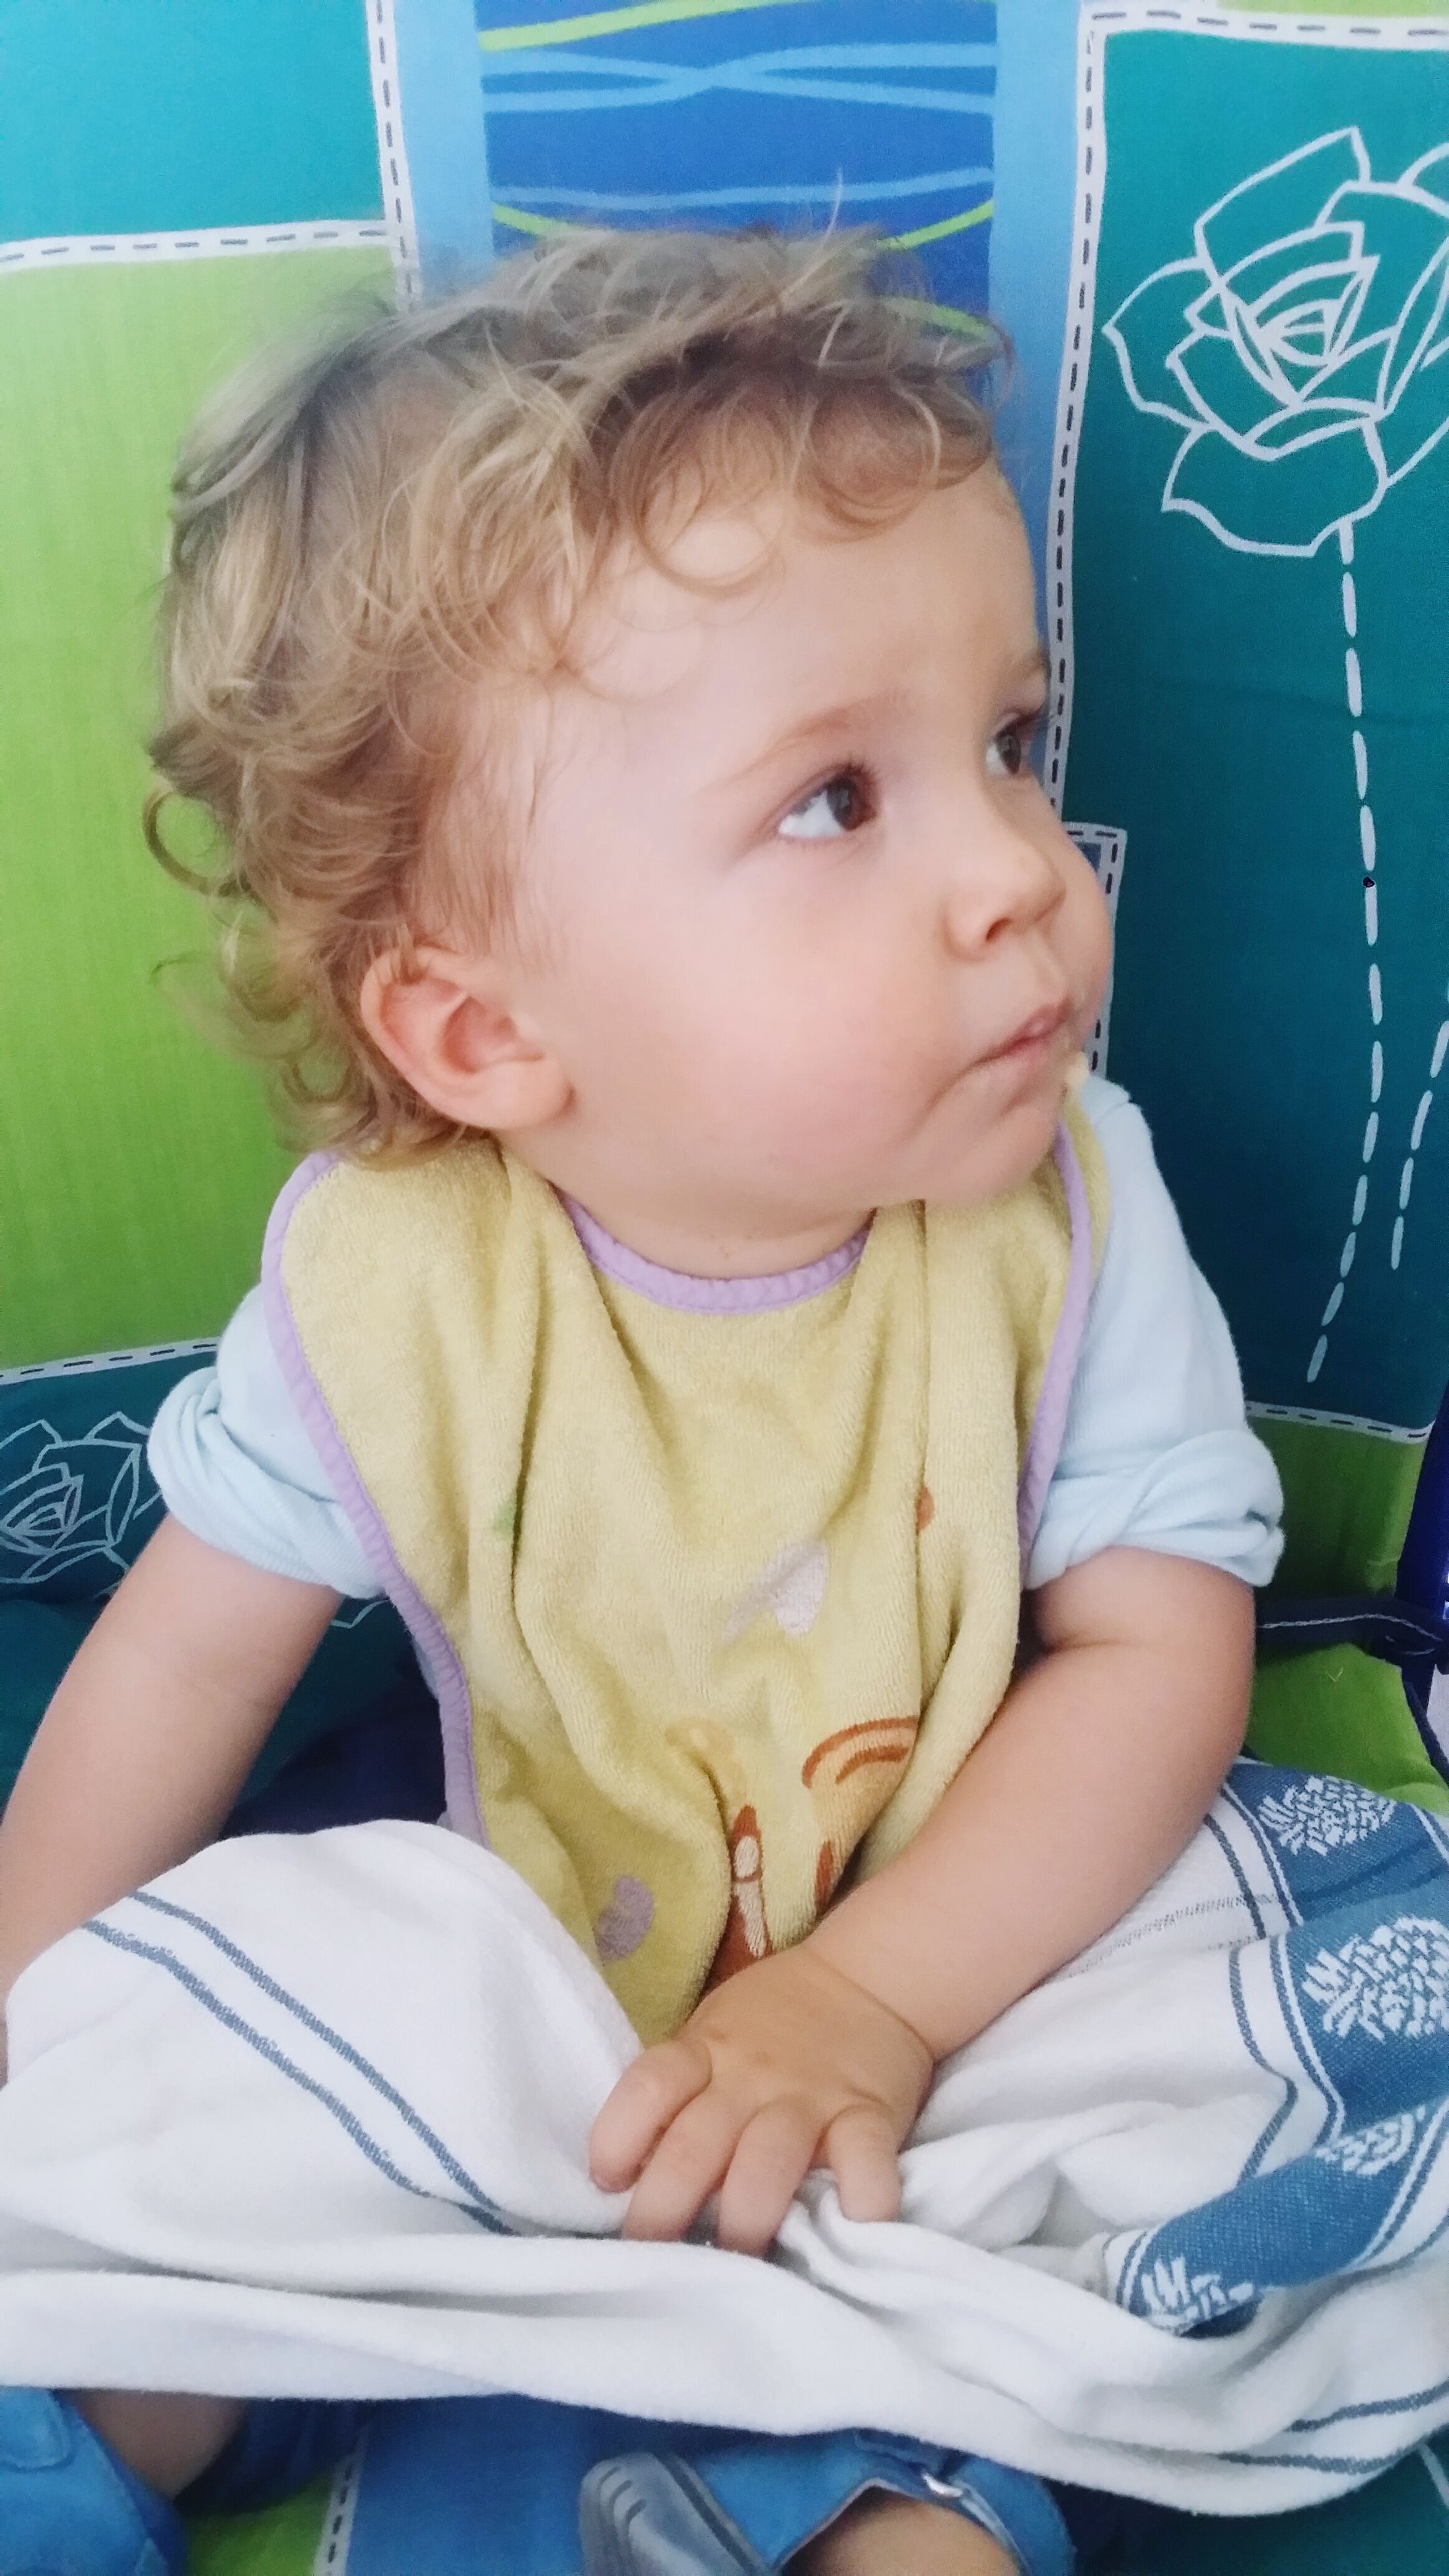 person, childhood, elementary age, innocence, casual clothing, cute, boys, lifestyles, indoors, front view, leisure activity, baby, toddler, waist up, three quarter length, babyhood, sitting, relaxation